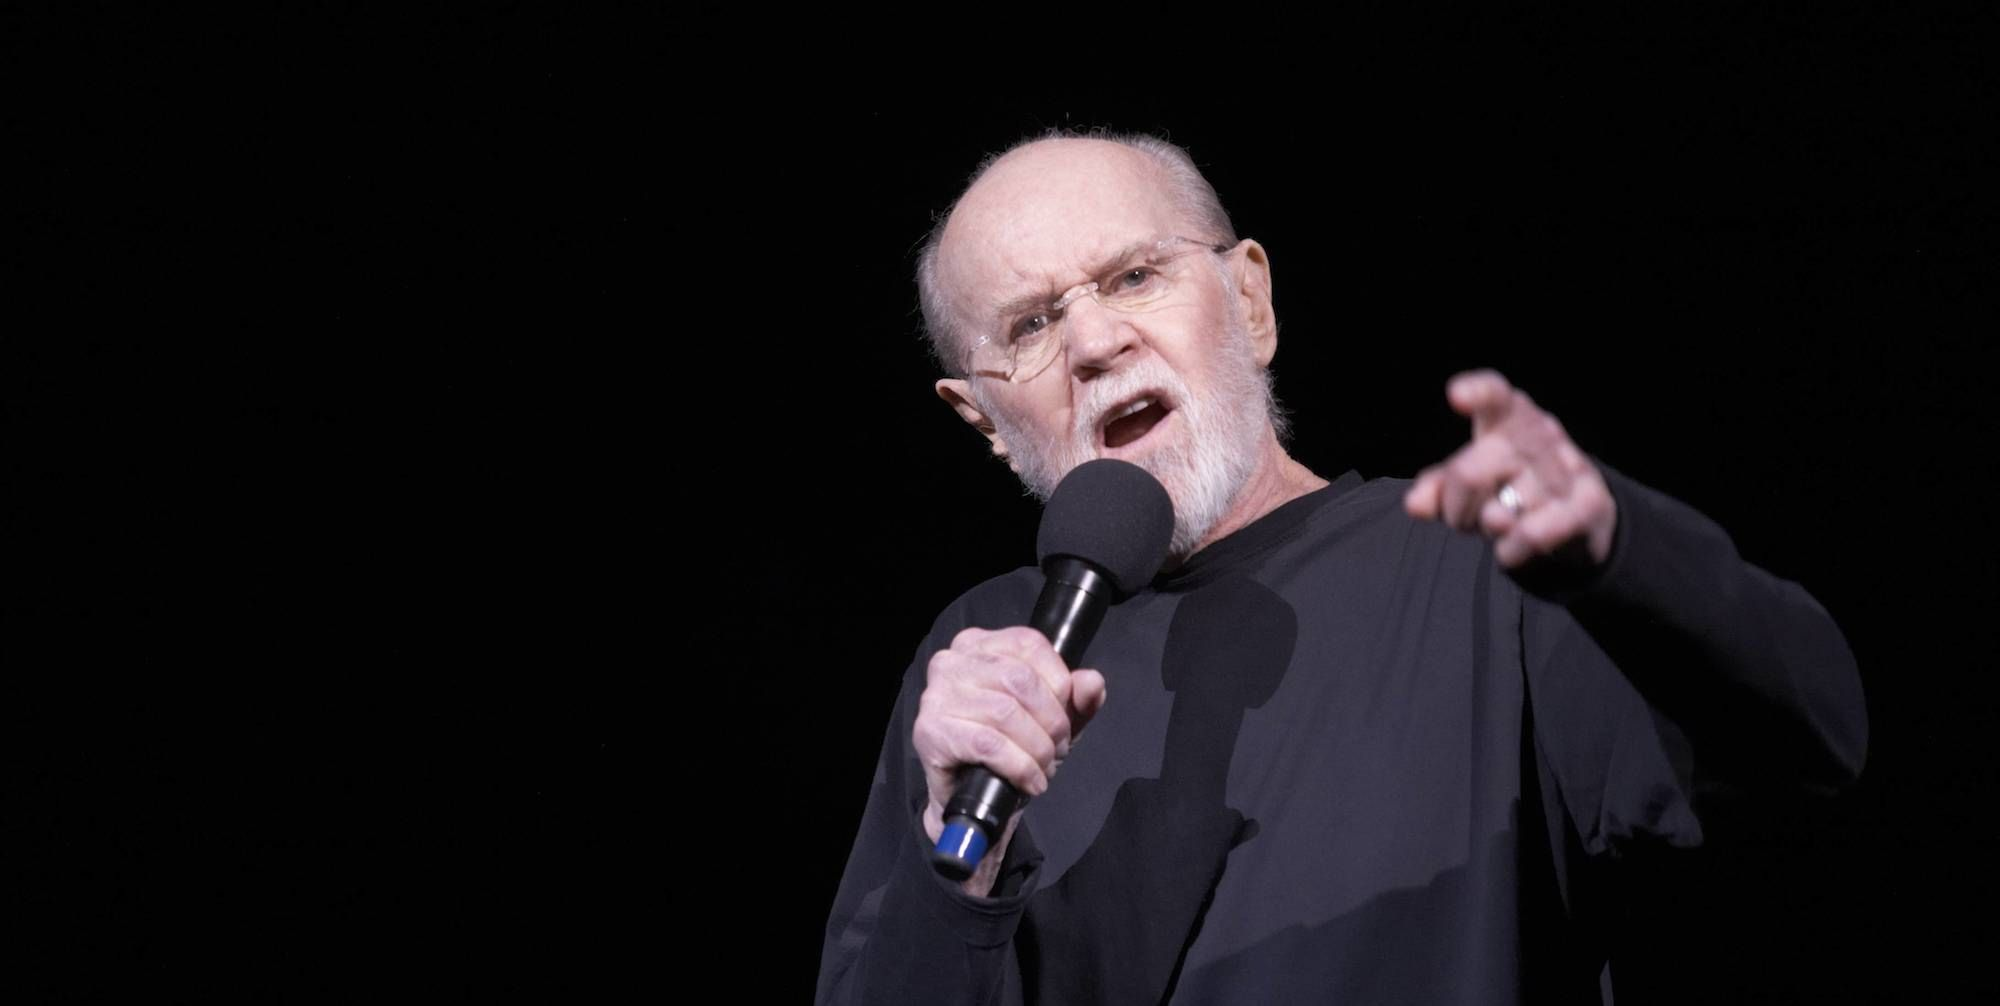 Listen to George Carlin's Infamous 9/11 Cop Rant